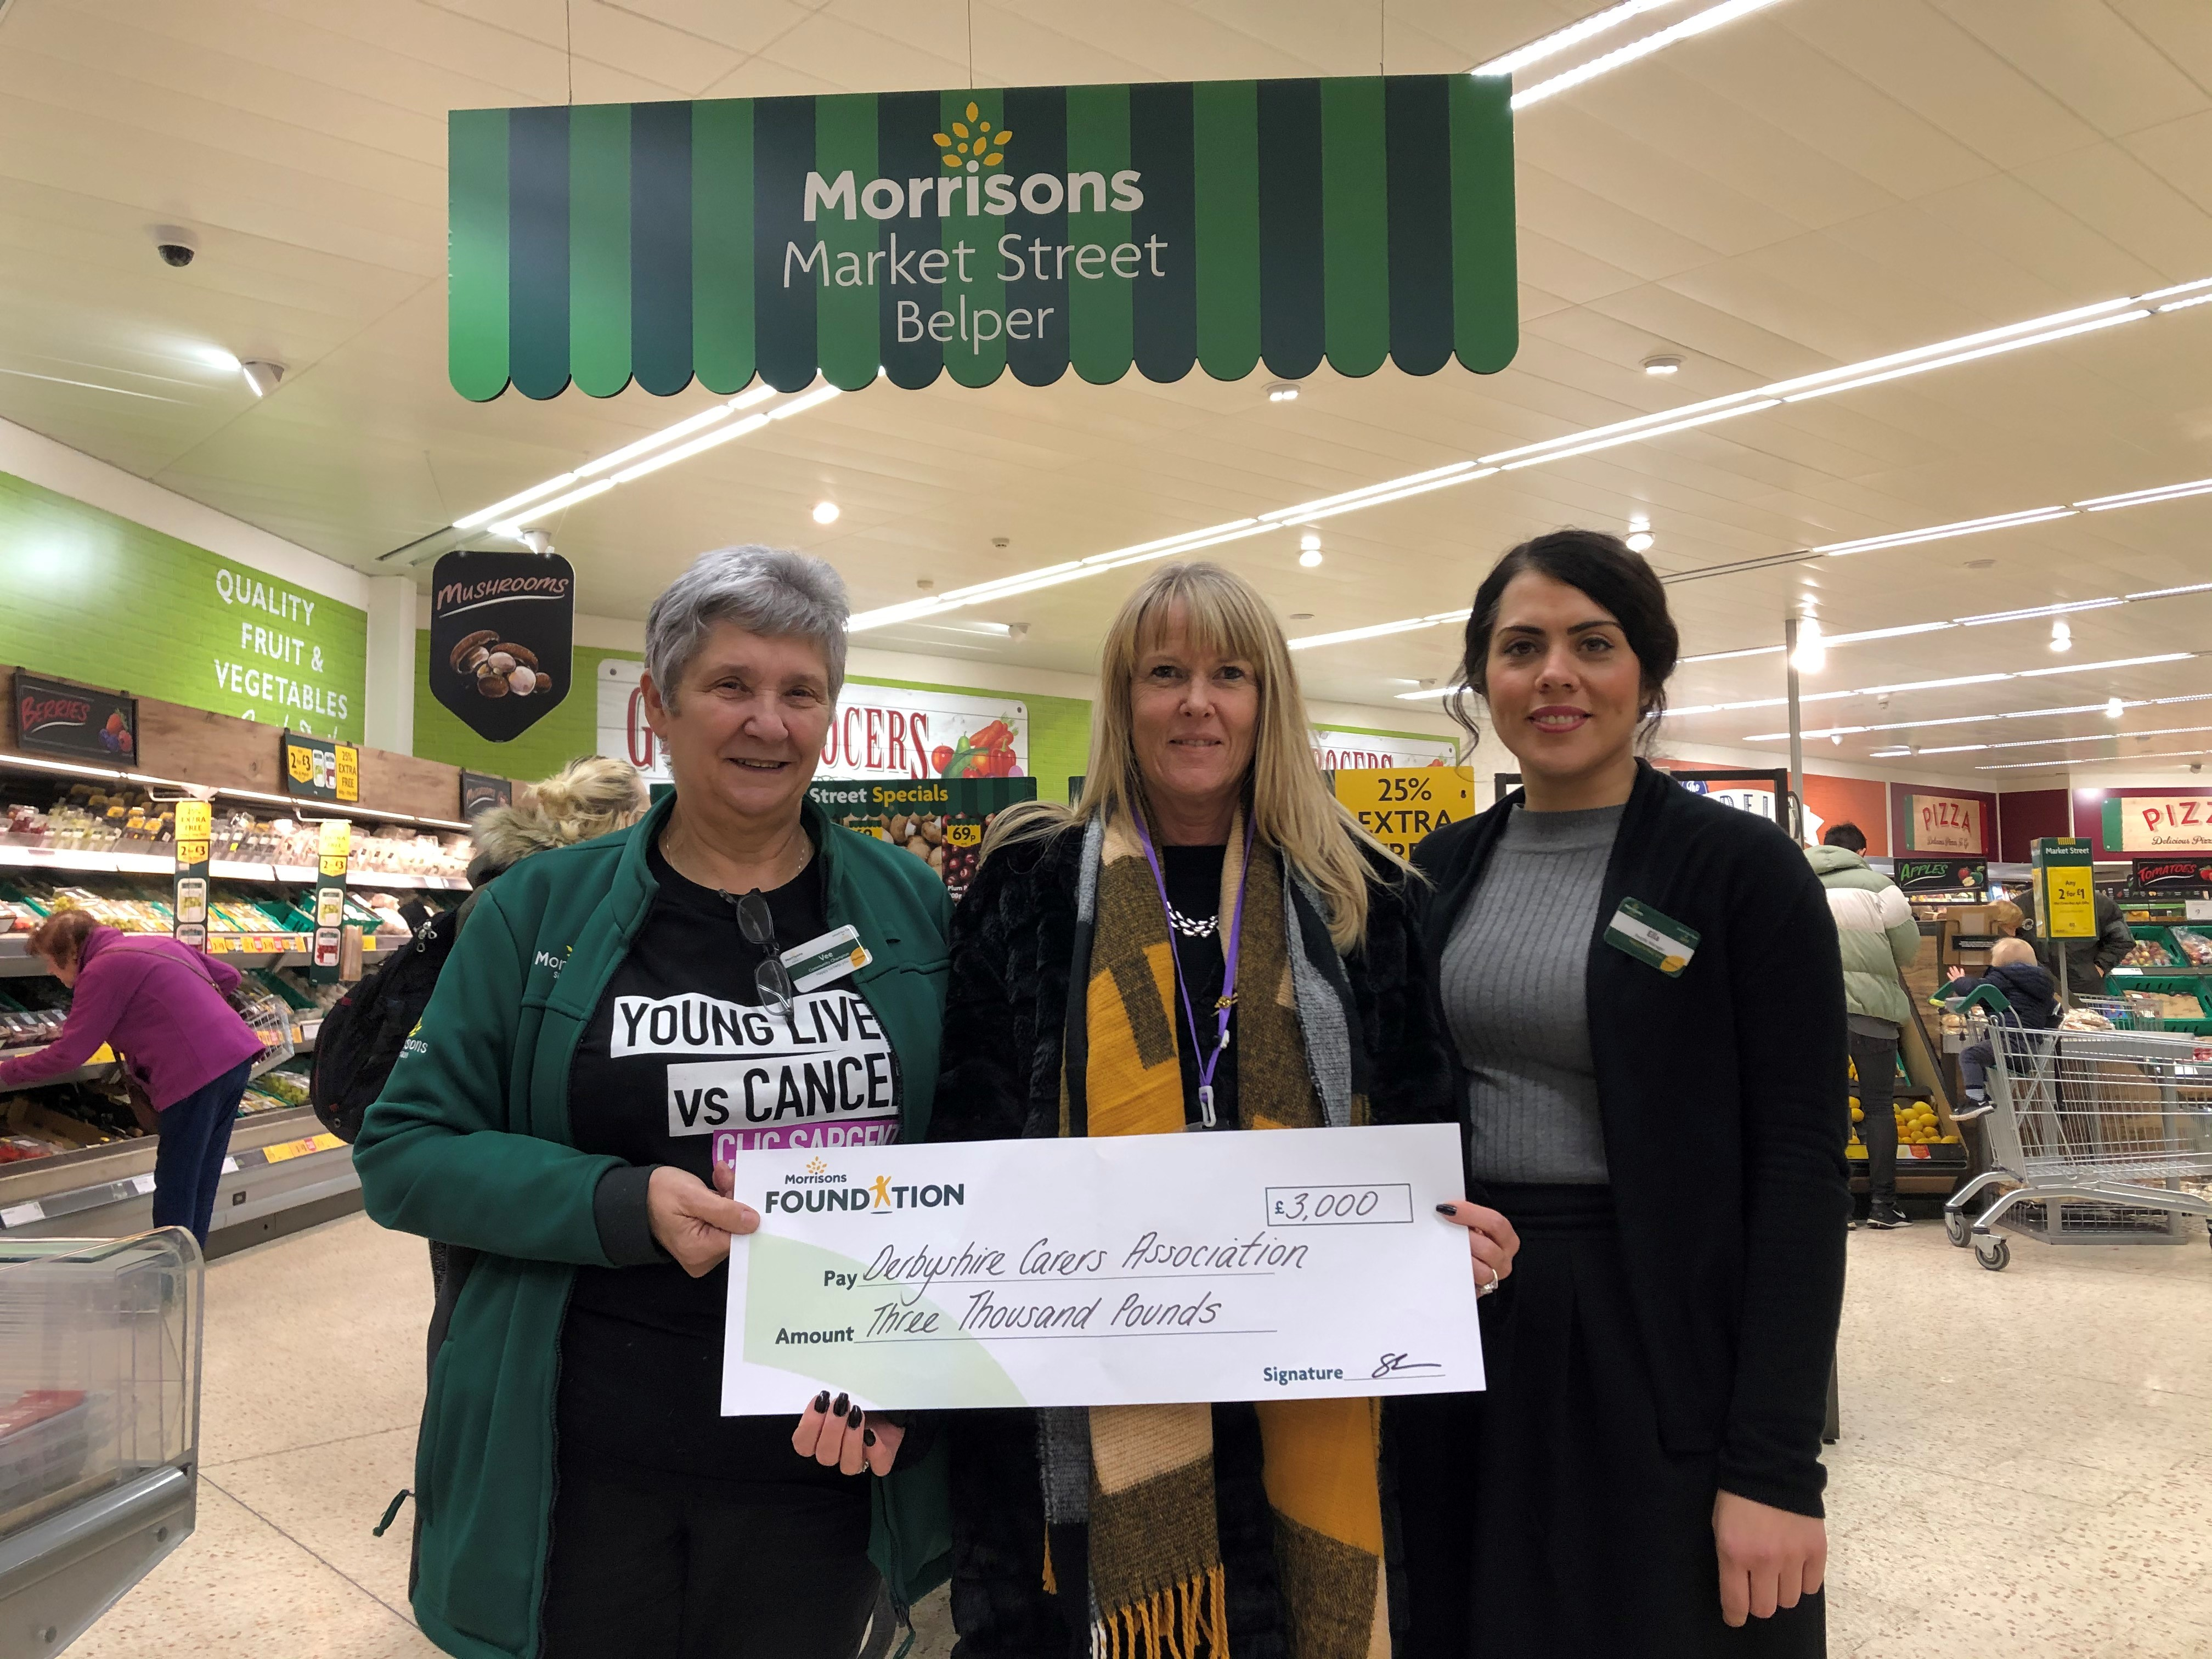 morrisons foundation 2.jpg (1.92 MB)